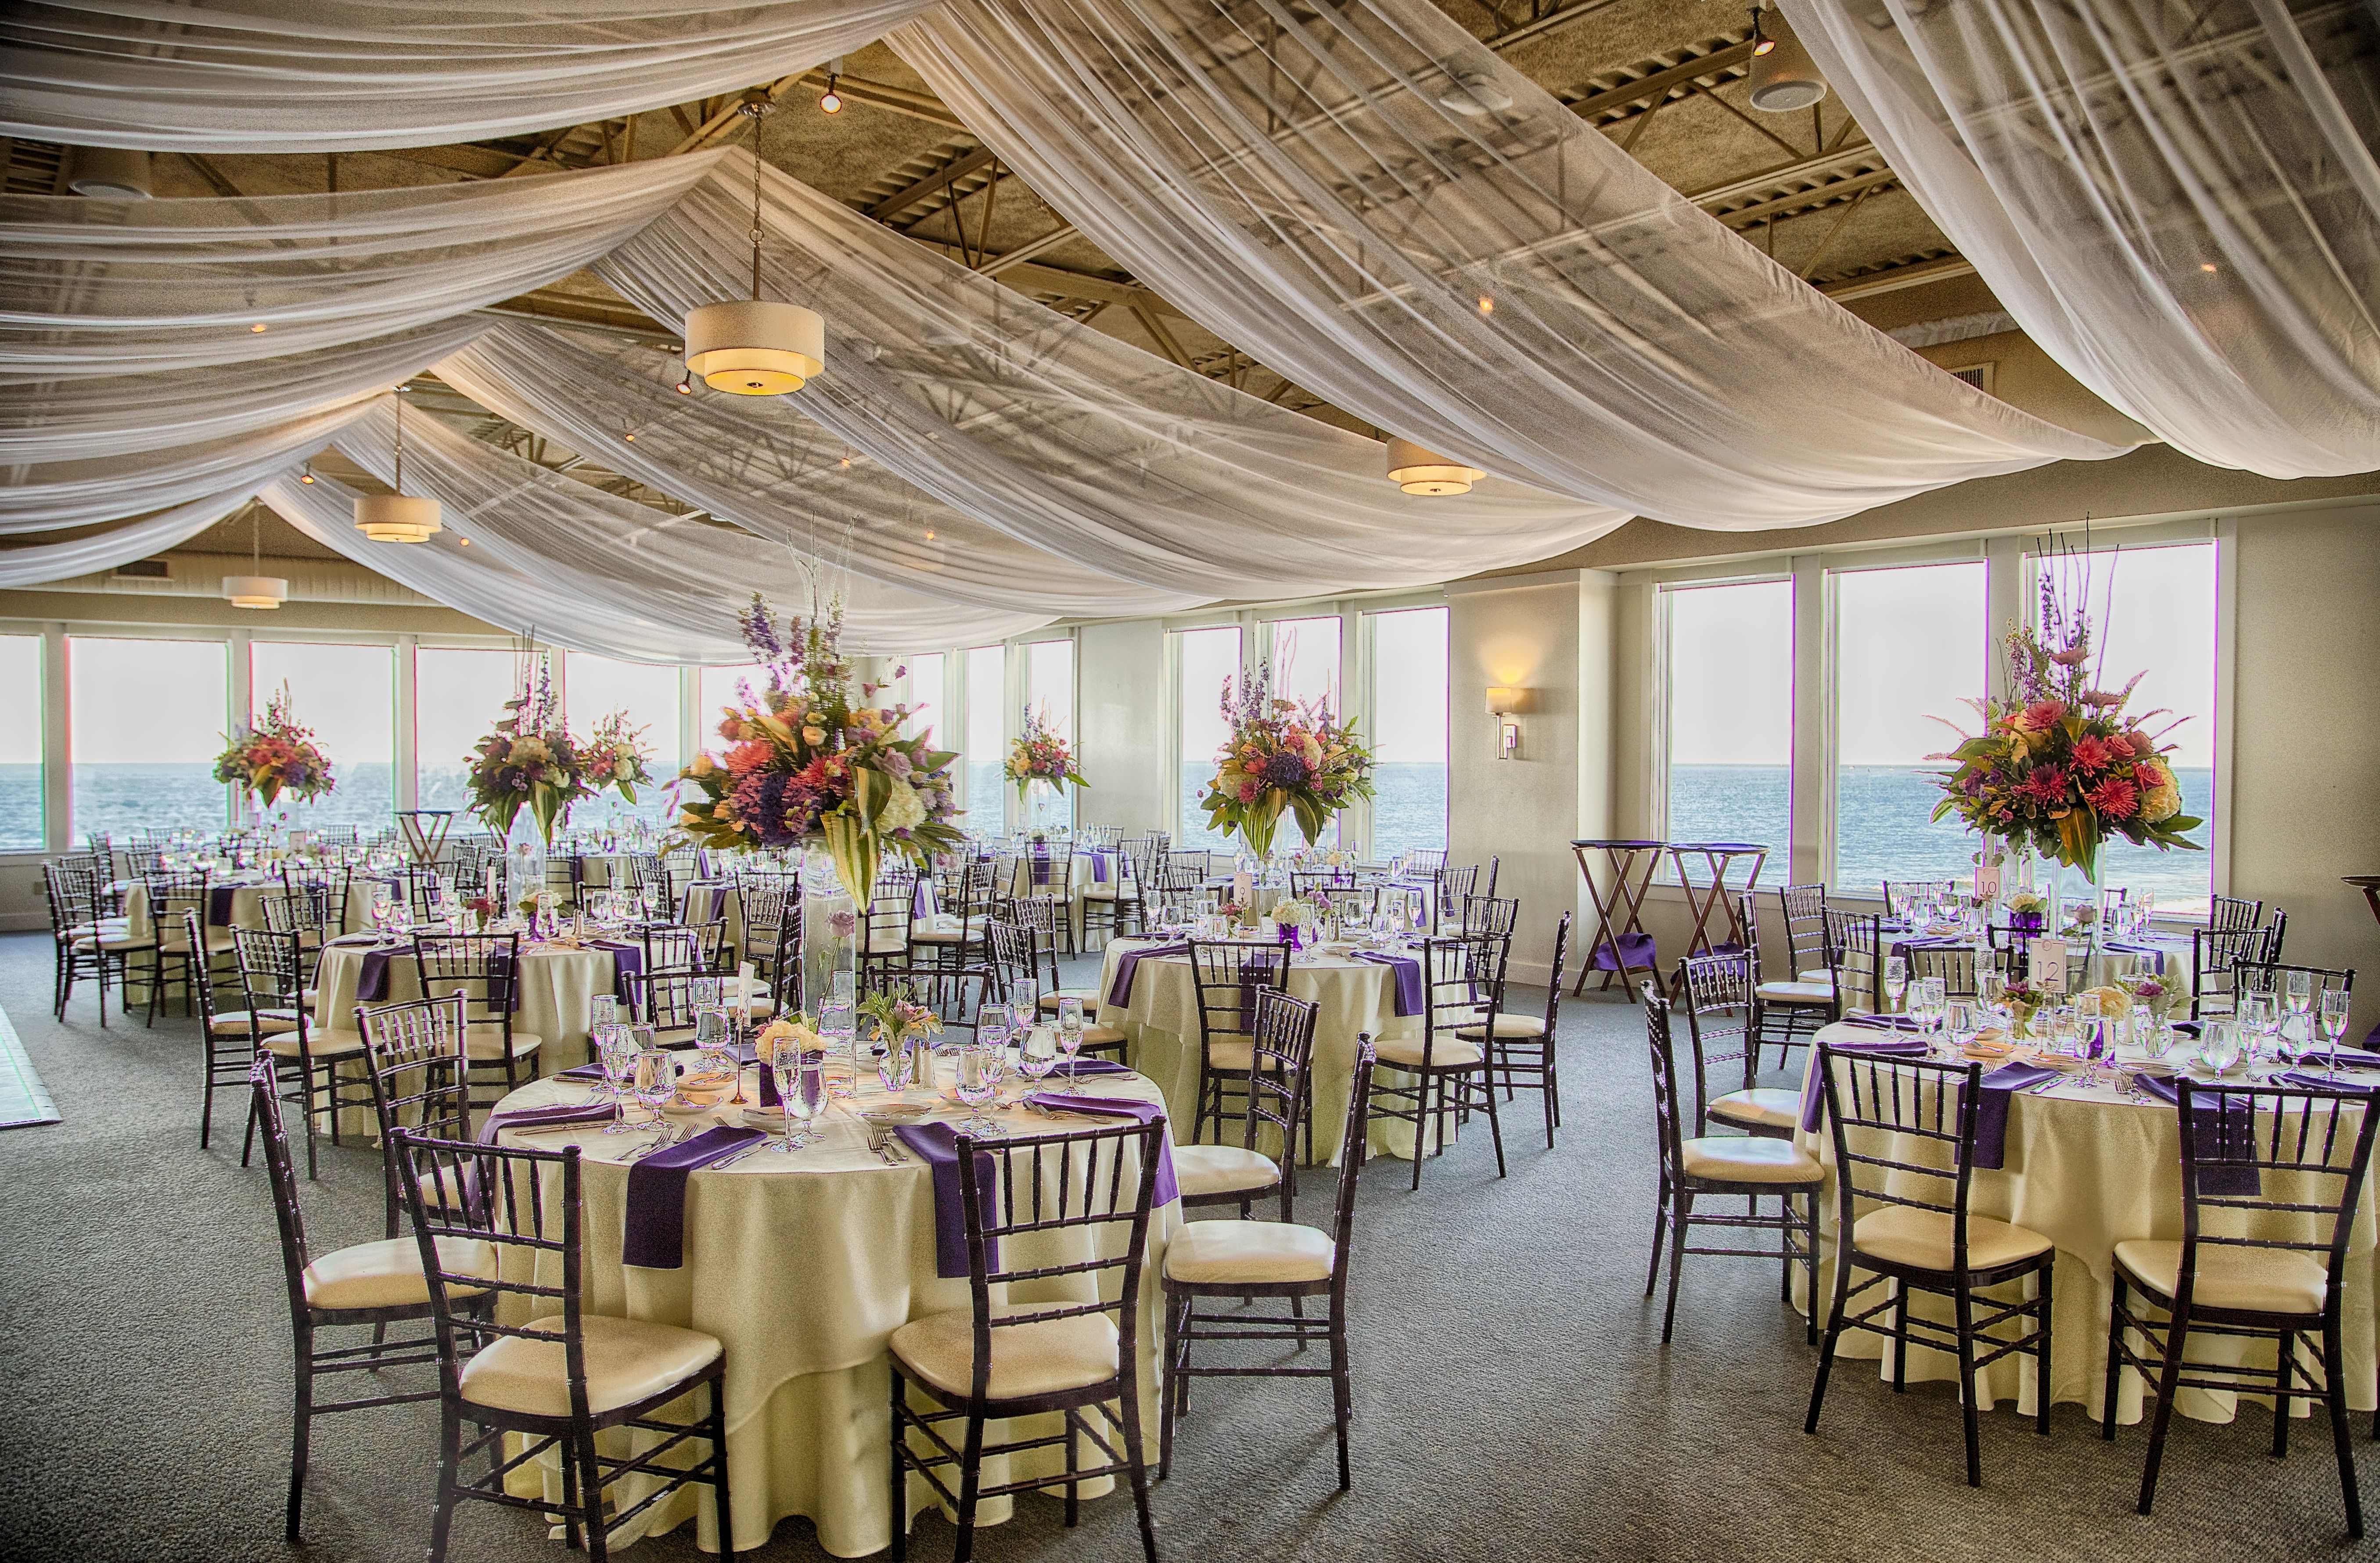 What An Amazing Transformation Of The Atlantic Ballroom For Katie Patrick S Wedding Day Thank You Social Light For The Wedding Drapery Ocean Wedding Wedding